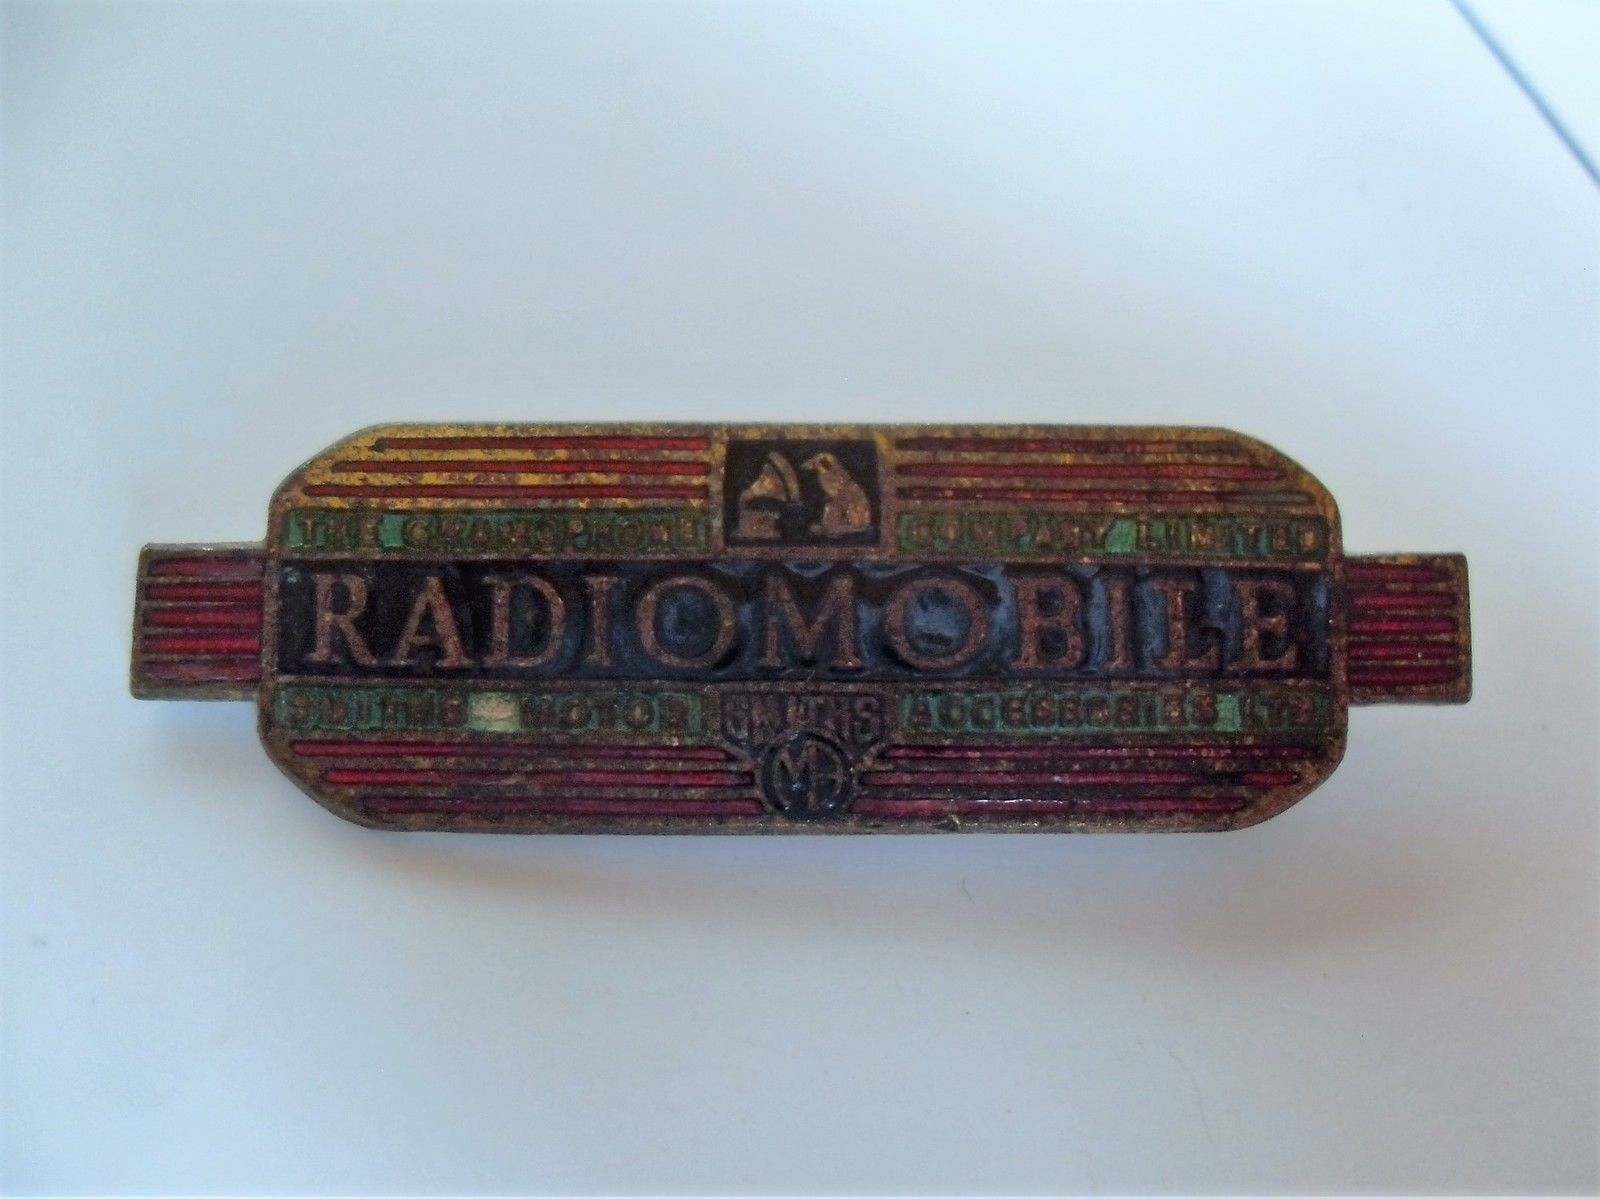 Original Radiomobile Emblem